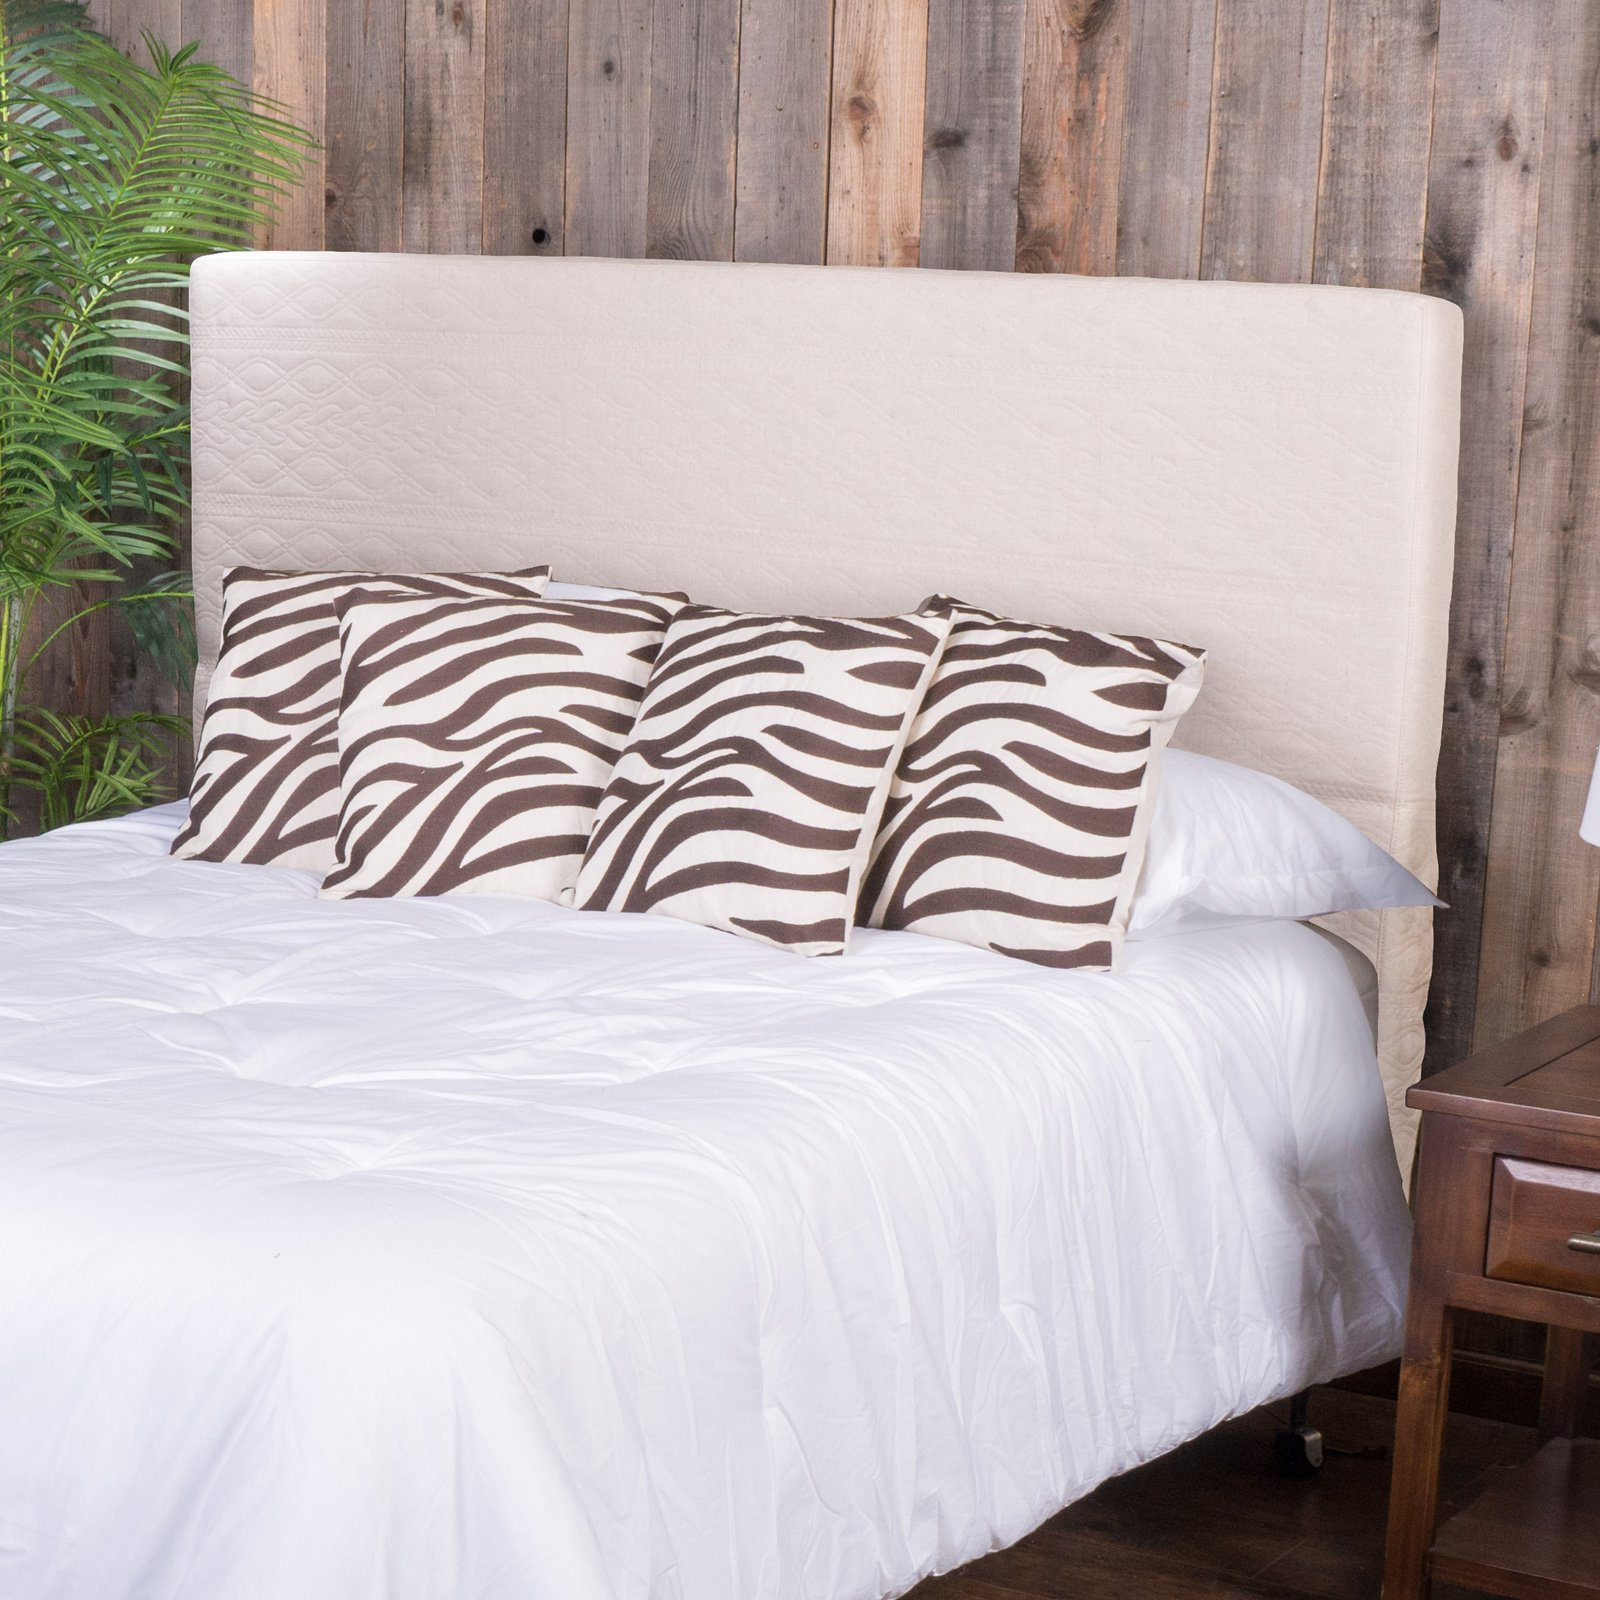 Galeton Upholstered Headboard King/California King